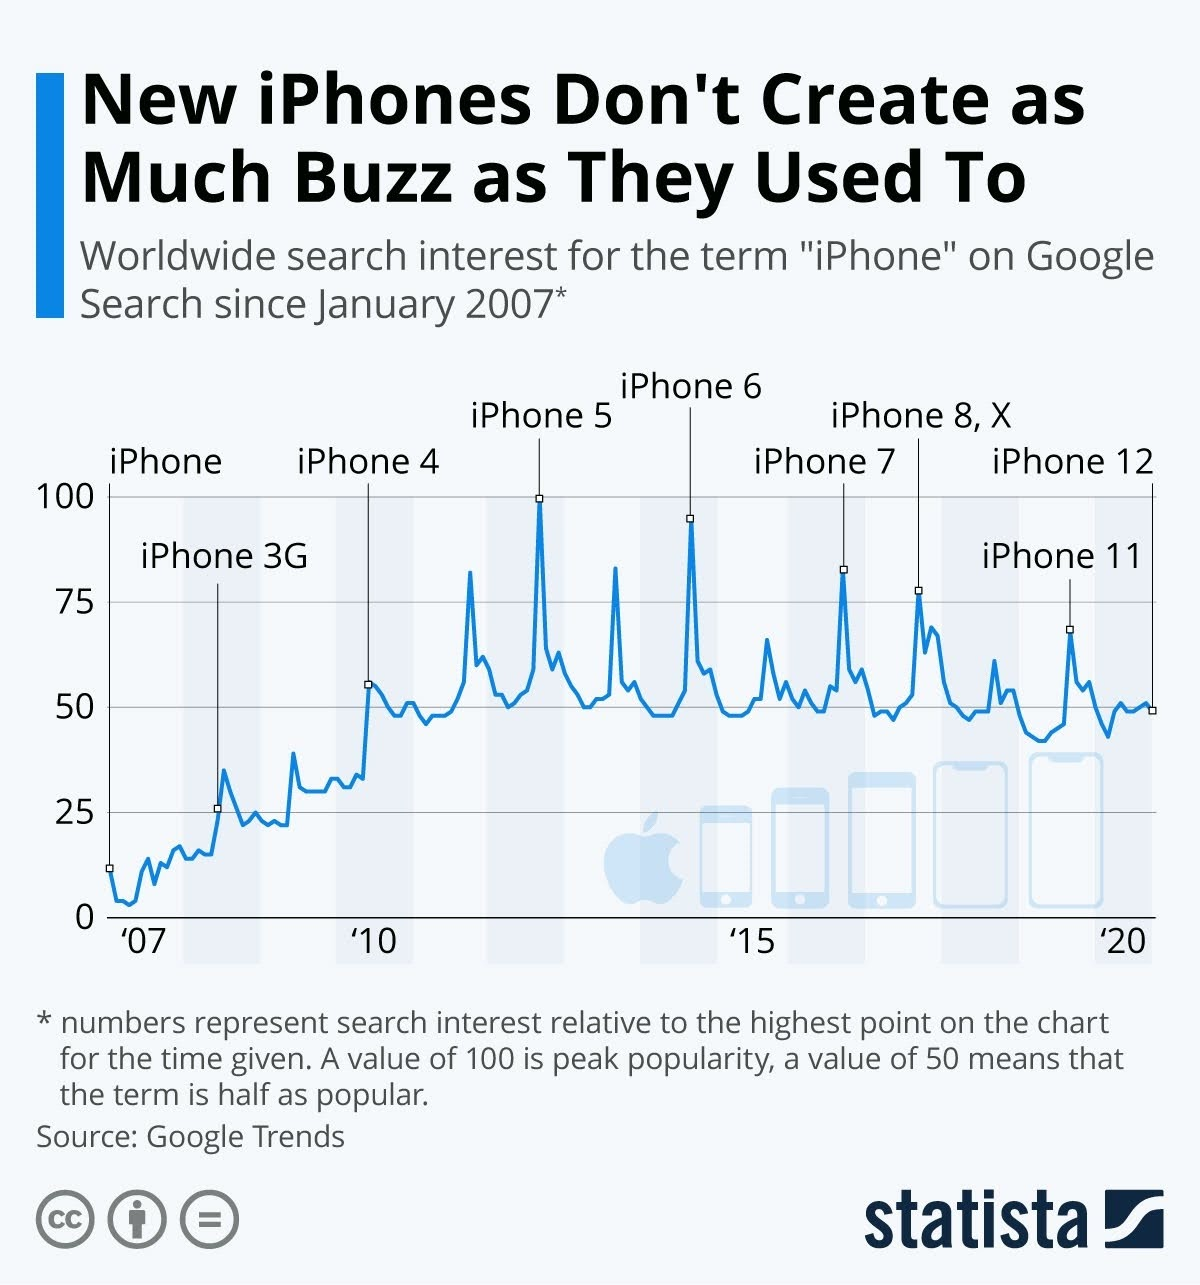 new-iphones-dont-create-as-much-buzz-as-they-used-to-infographic